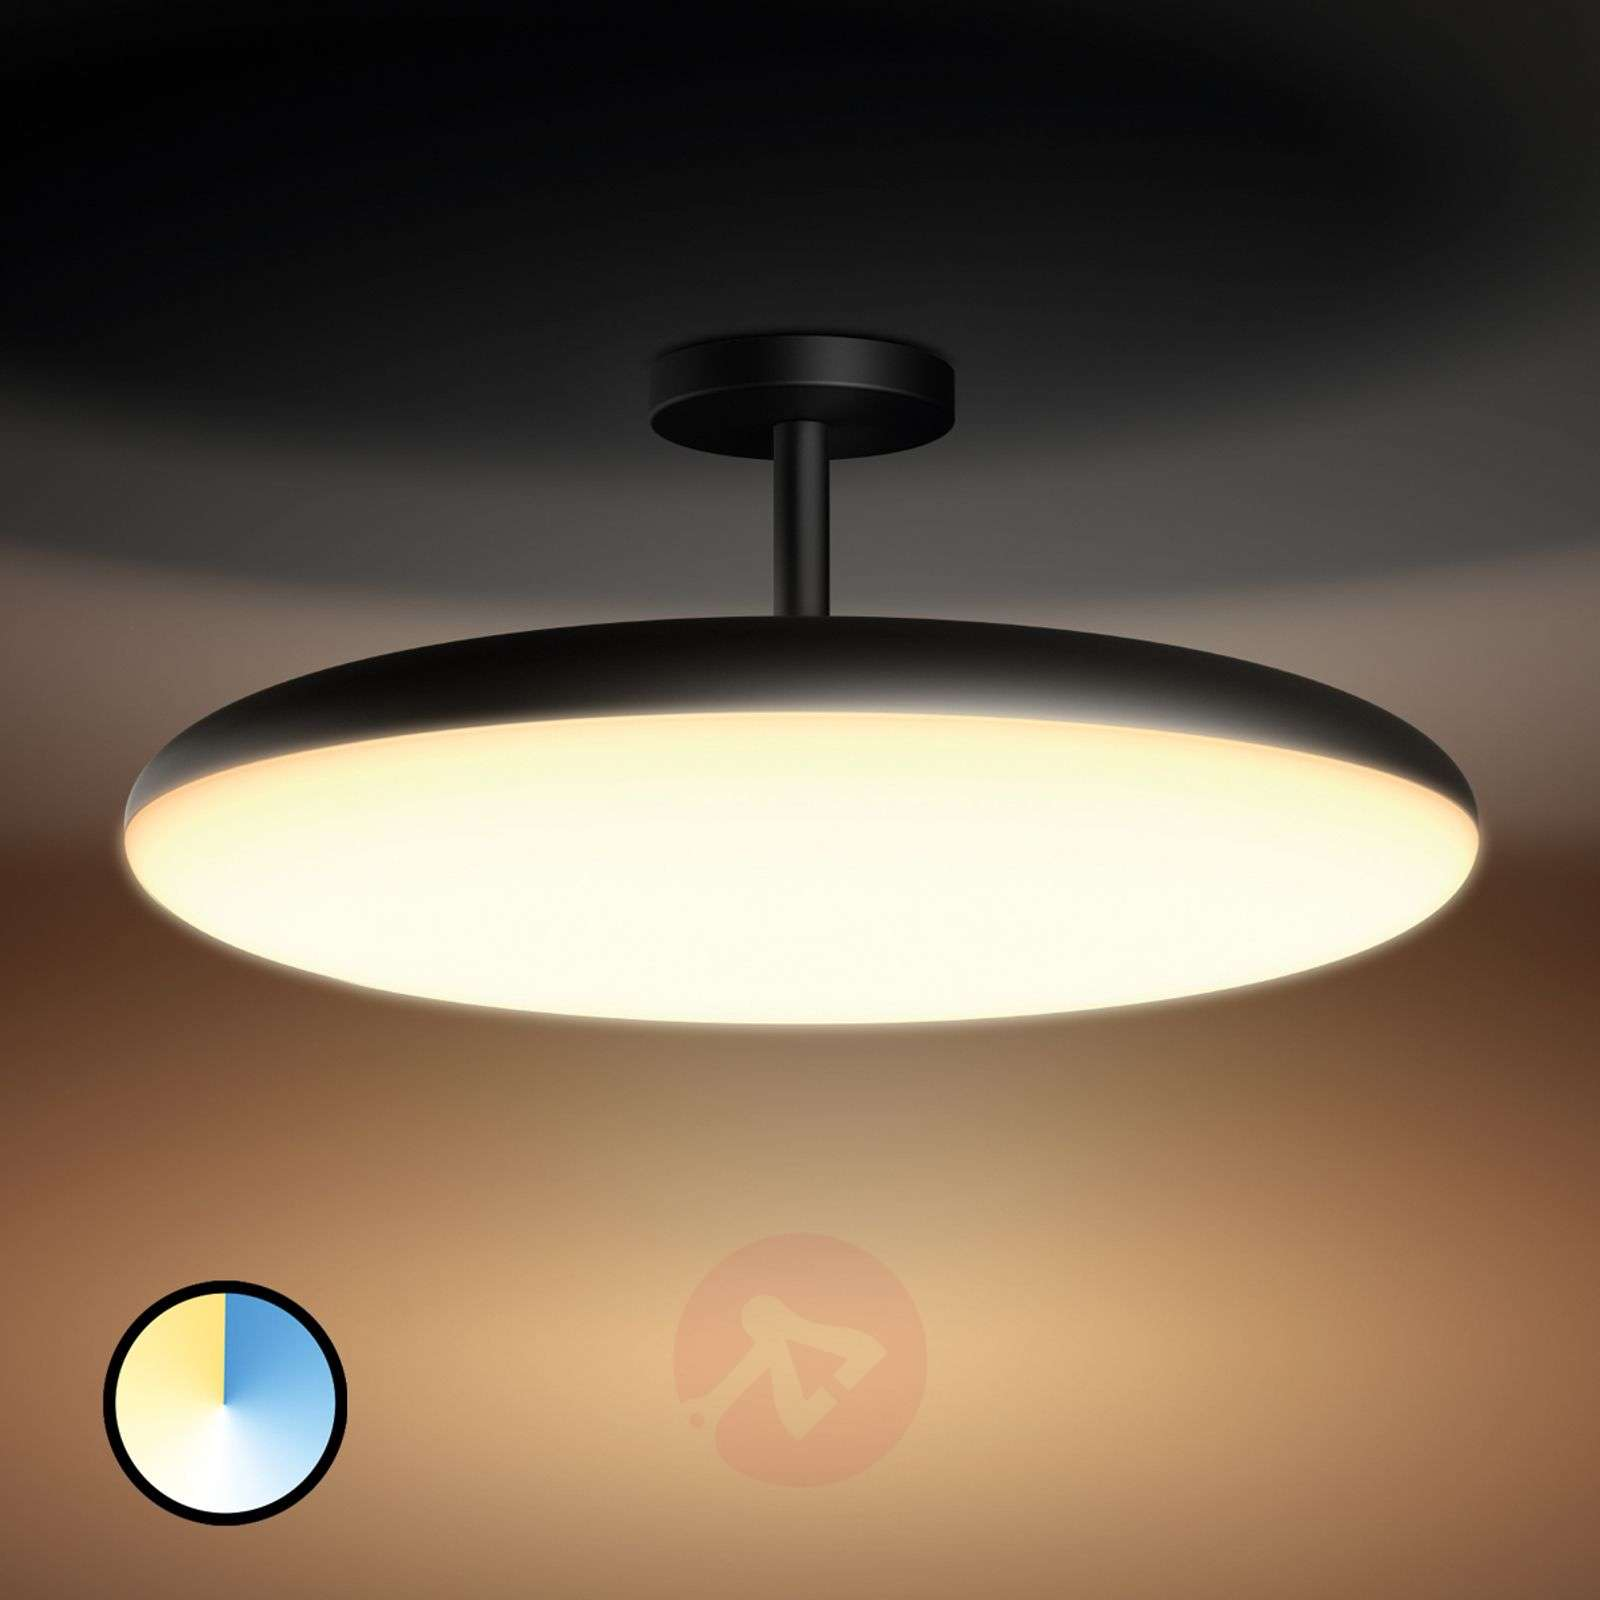 Plafoniera Tubo Led Philips : Controllable philips hue led ceiling lamp cher lights.ie